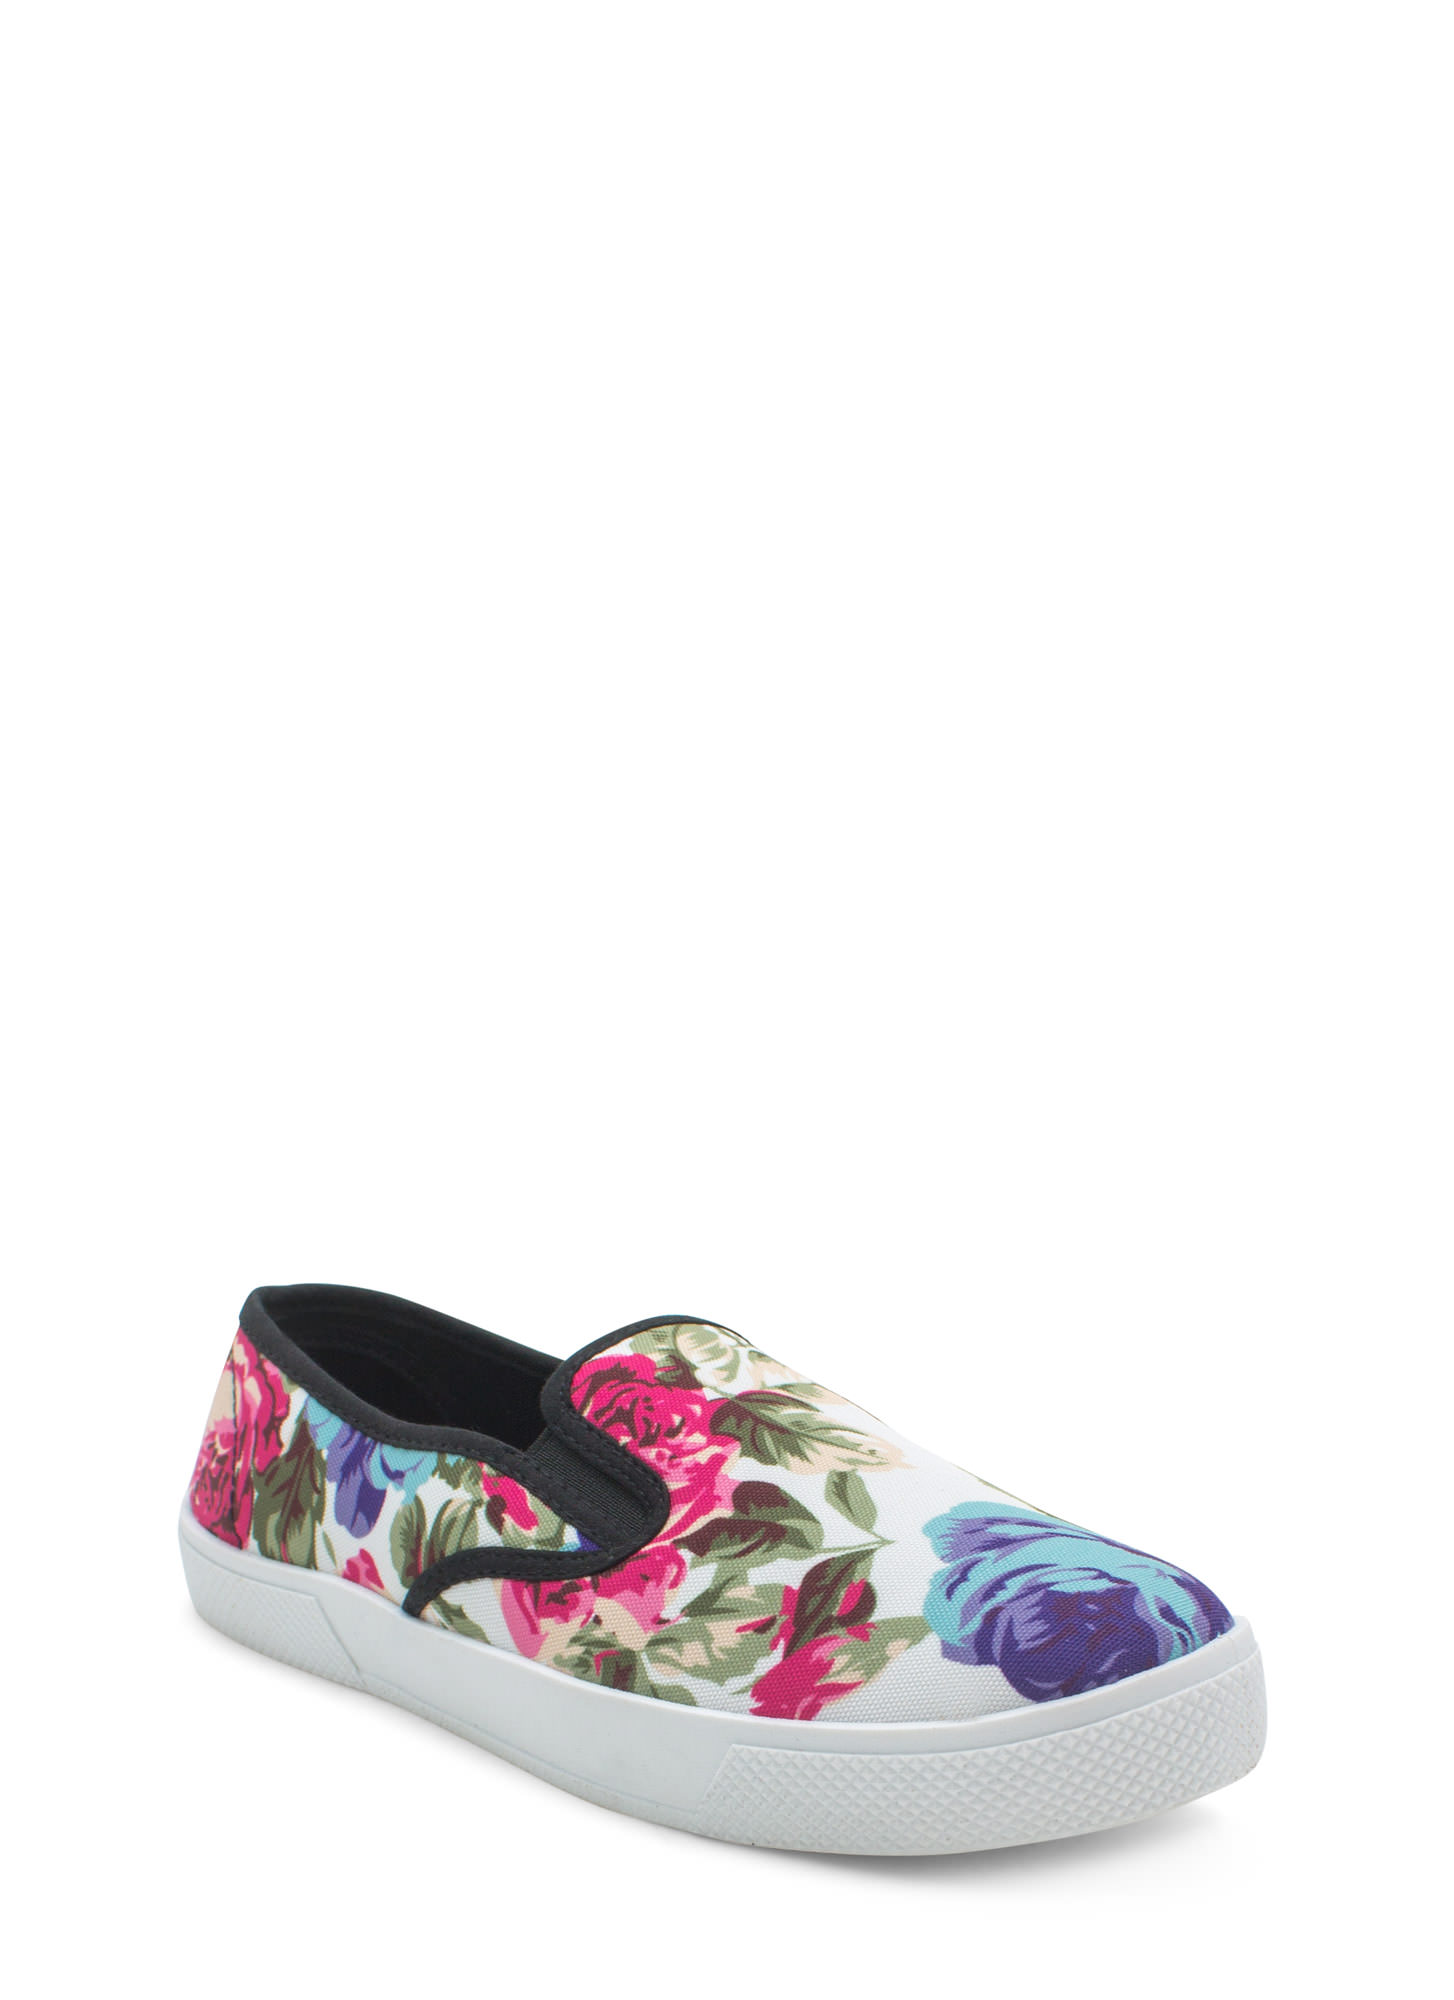 More Flower To You Slip-On Sneakers WHITE